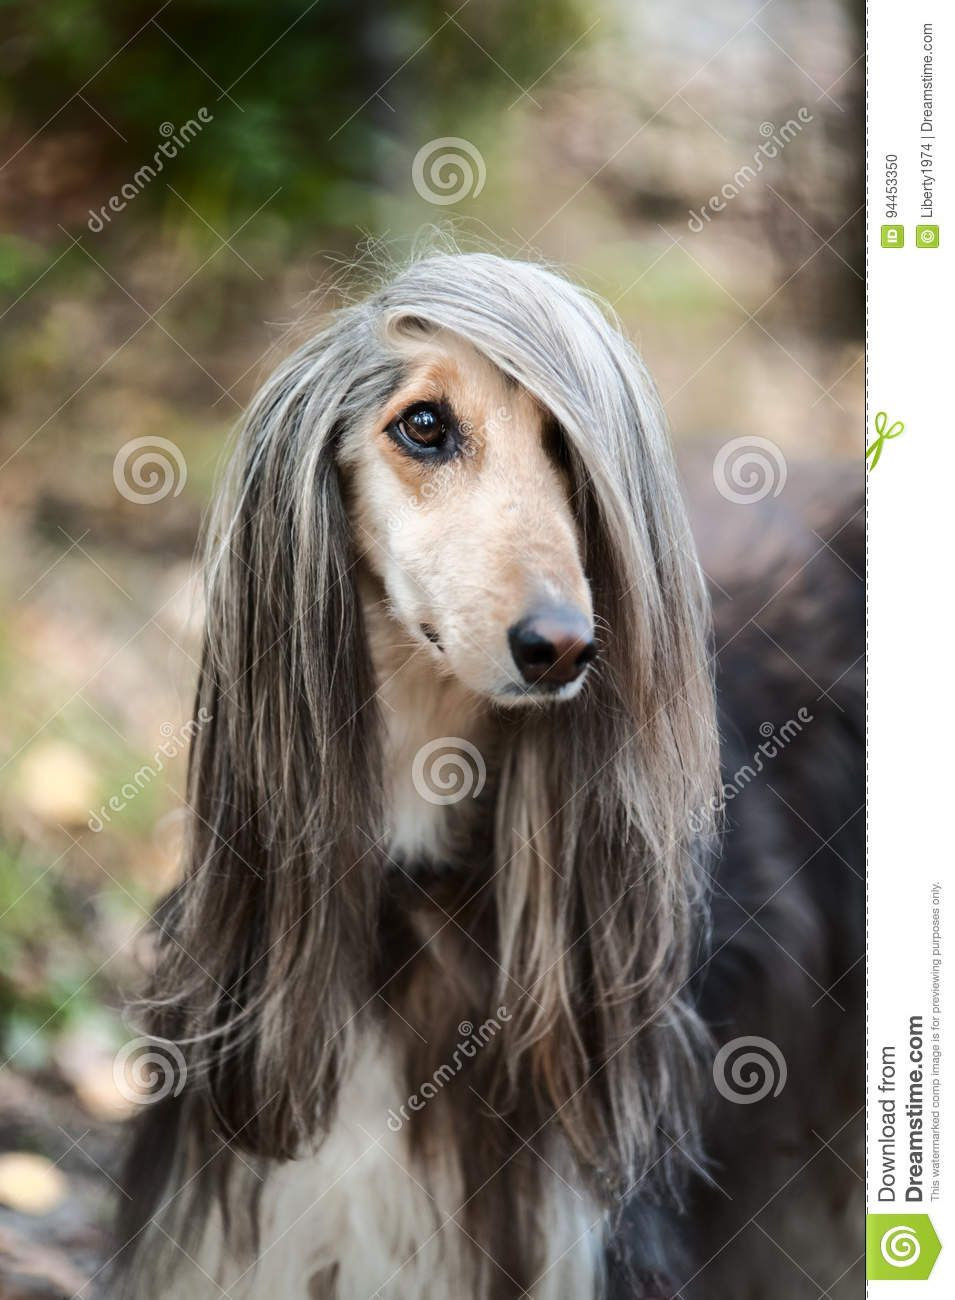 Afghan Hound The Afghan Hound Is A Long Haired Relative Of The Greyhound That Is Distinguis Long Haired Dog Breeds Most Beautiful Dog Breeds Long Haired Dogs